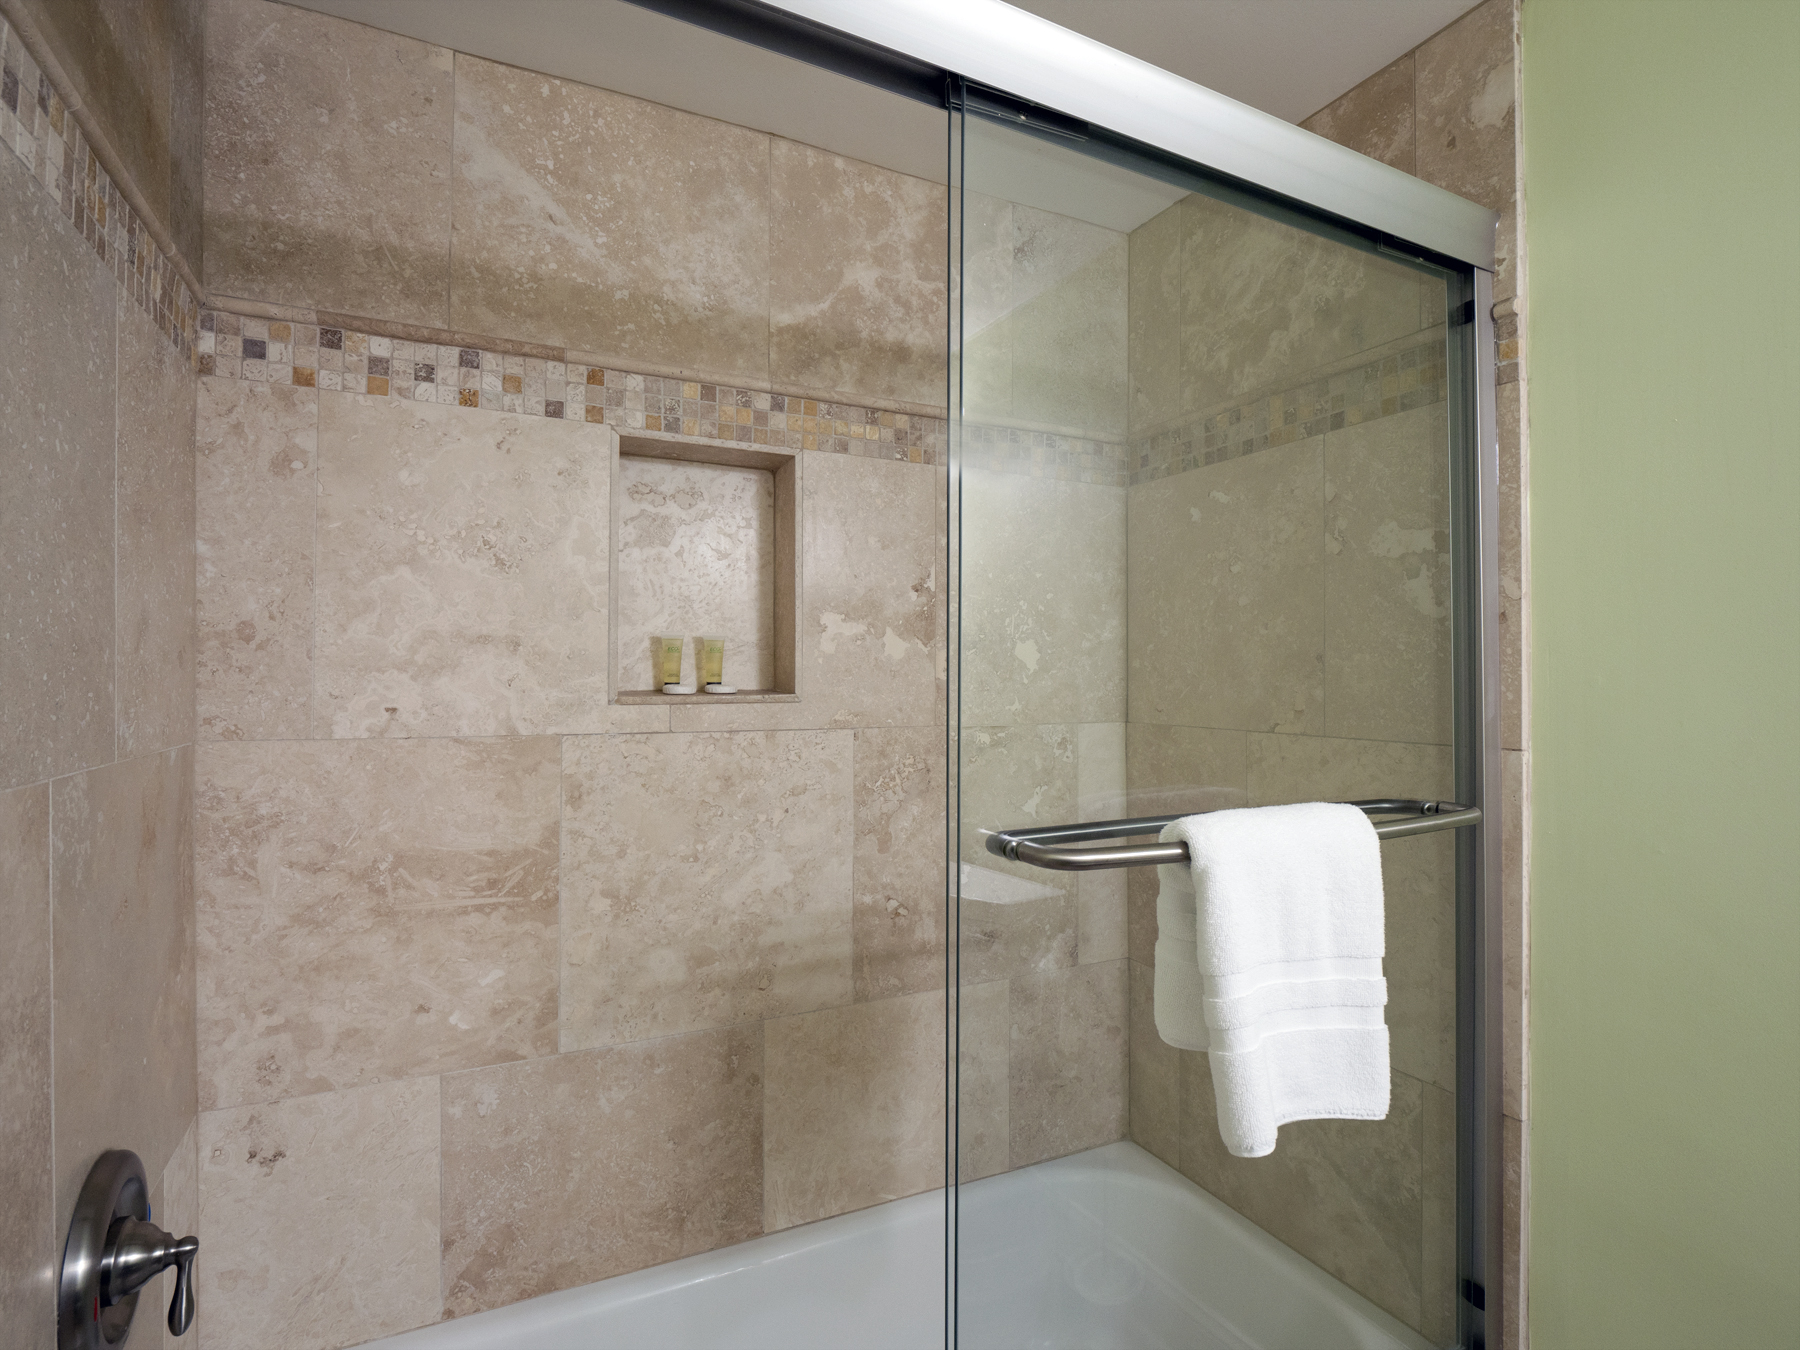 Tiled master shower with tub